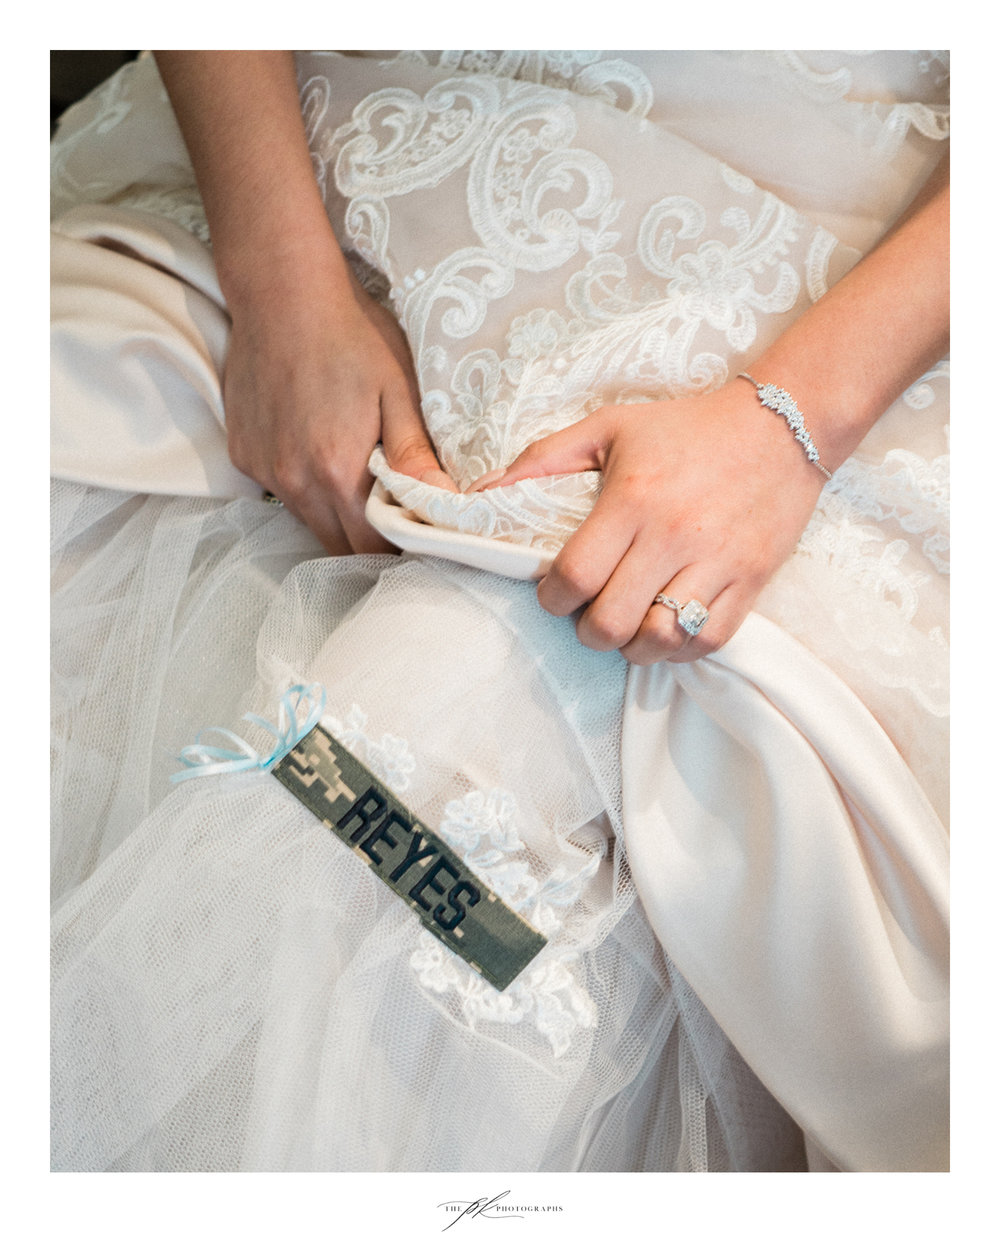 Bride's father's Air Force name badge sewn into her wedding dress at Magnolia Halle in San Antonio, Texas - Photographed by The PK Photographs